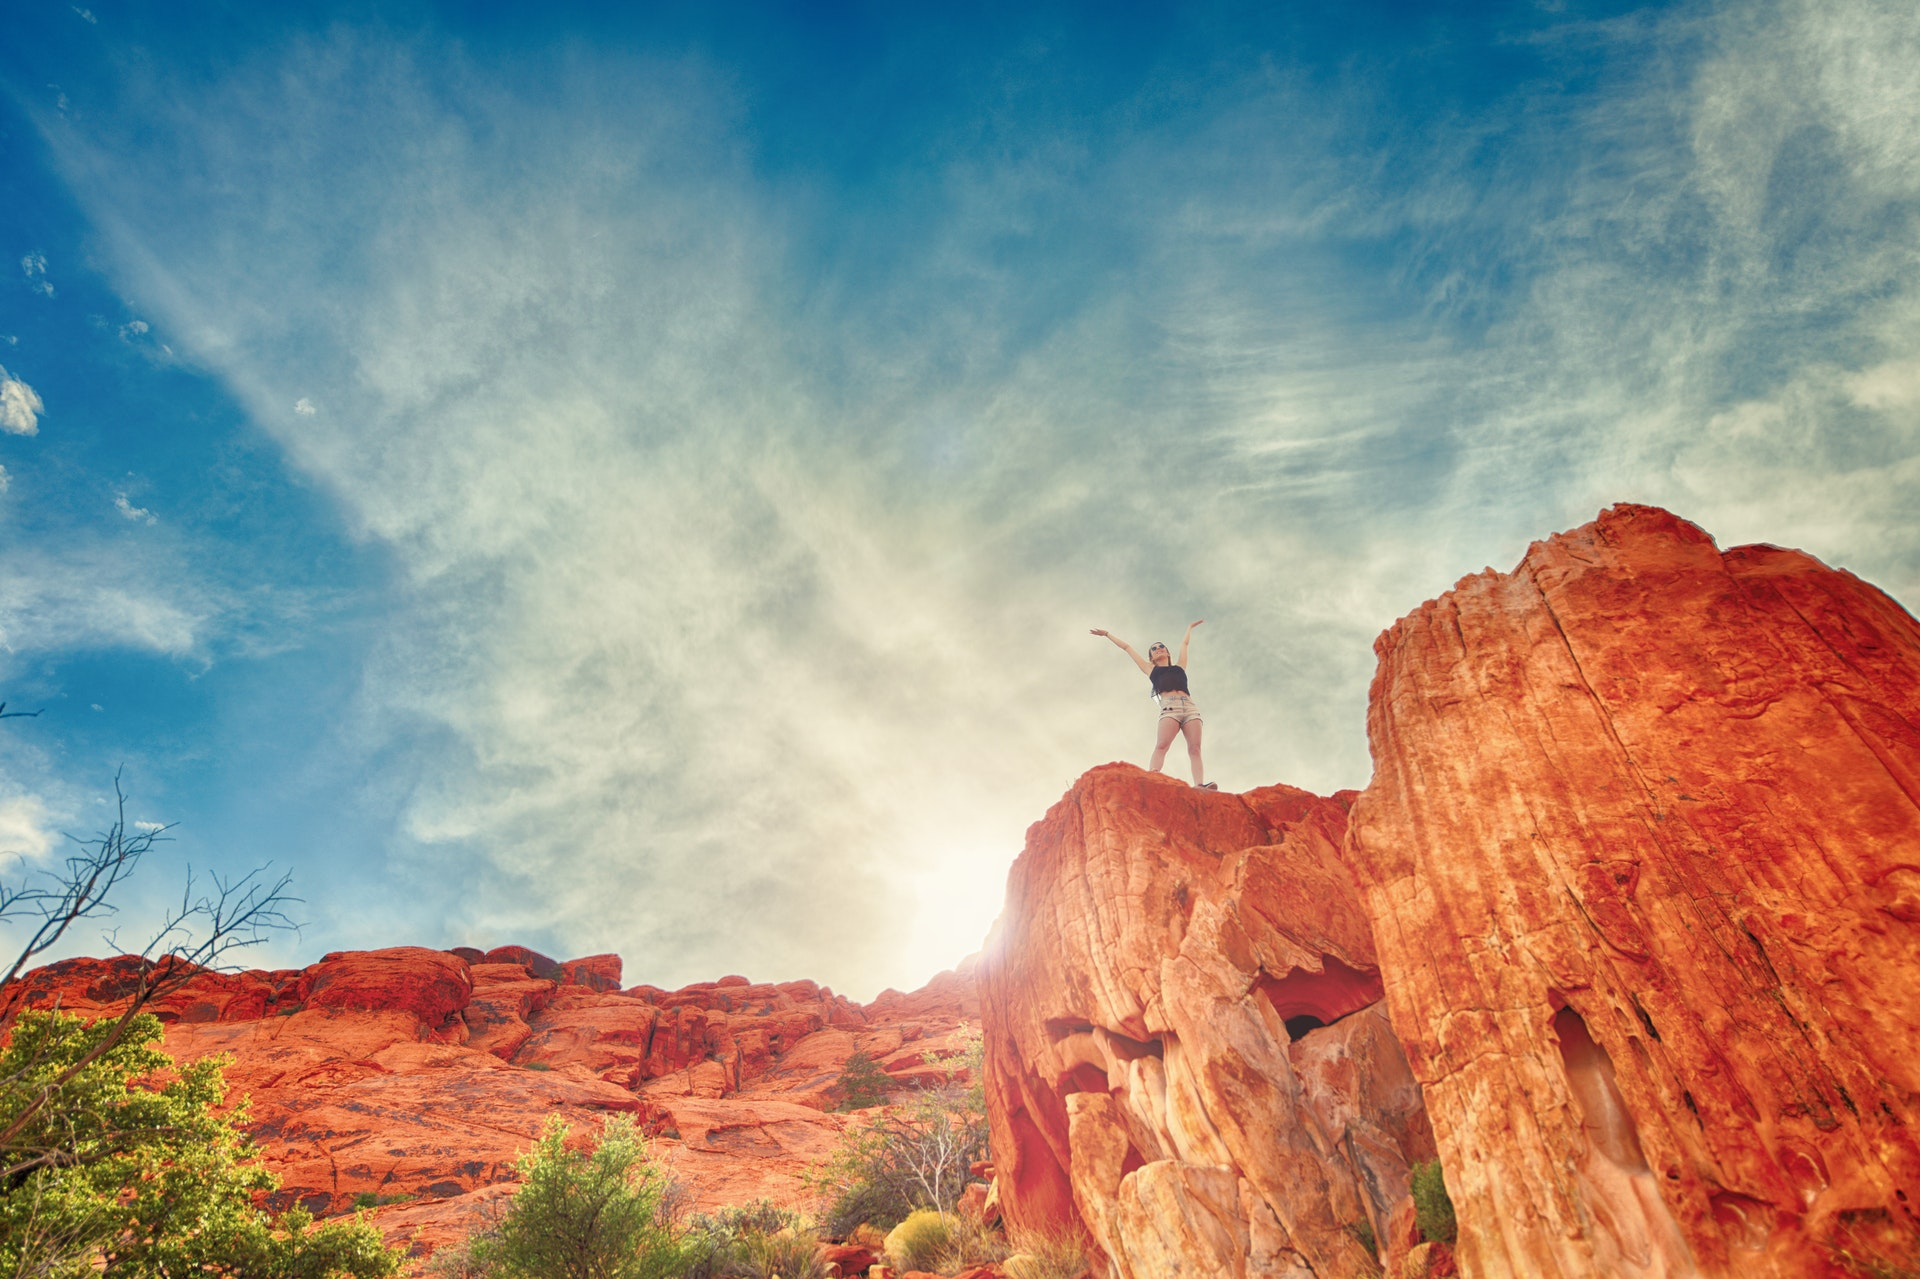 Girl on red rock desert cliff BioSuperfood